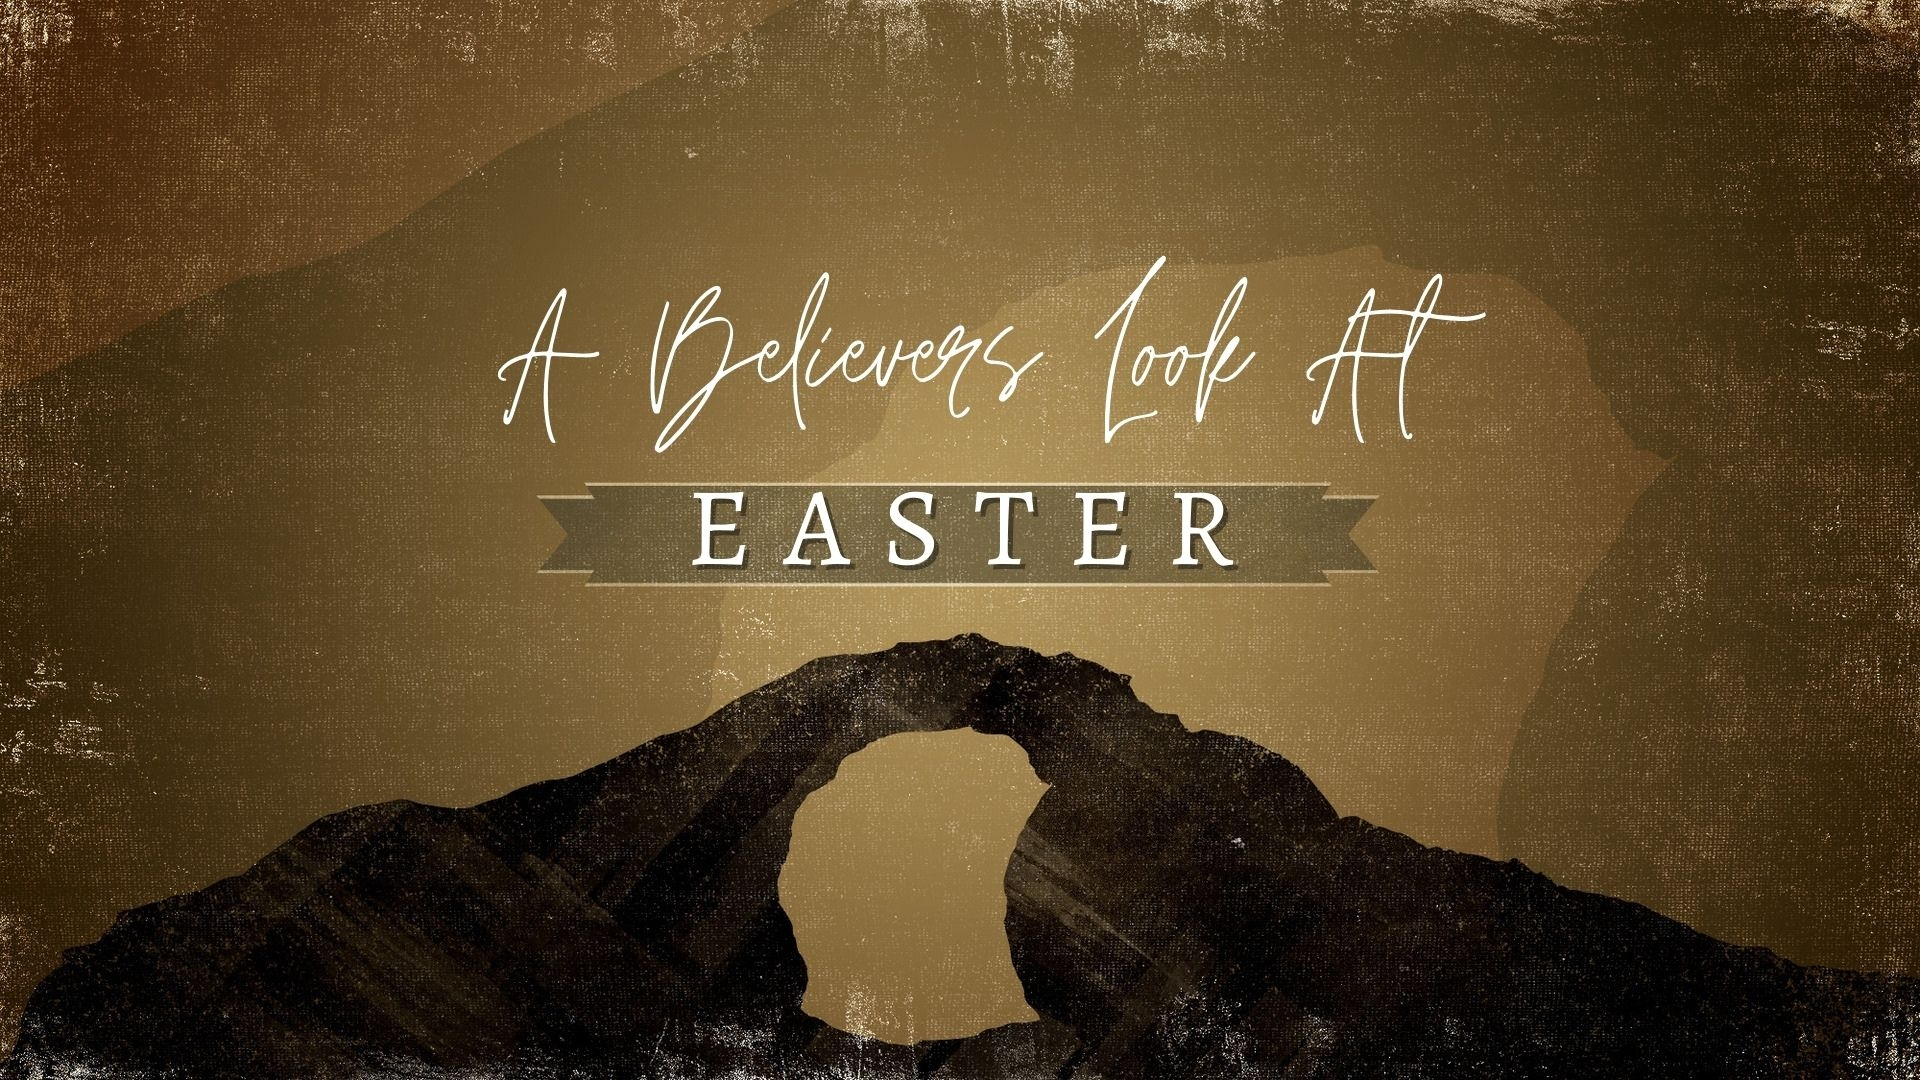 Thursday April 1, 2021 A Believers Look At Easter - Pastor Anthony Cox